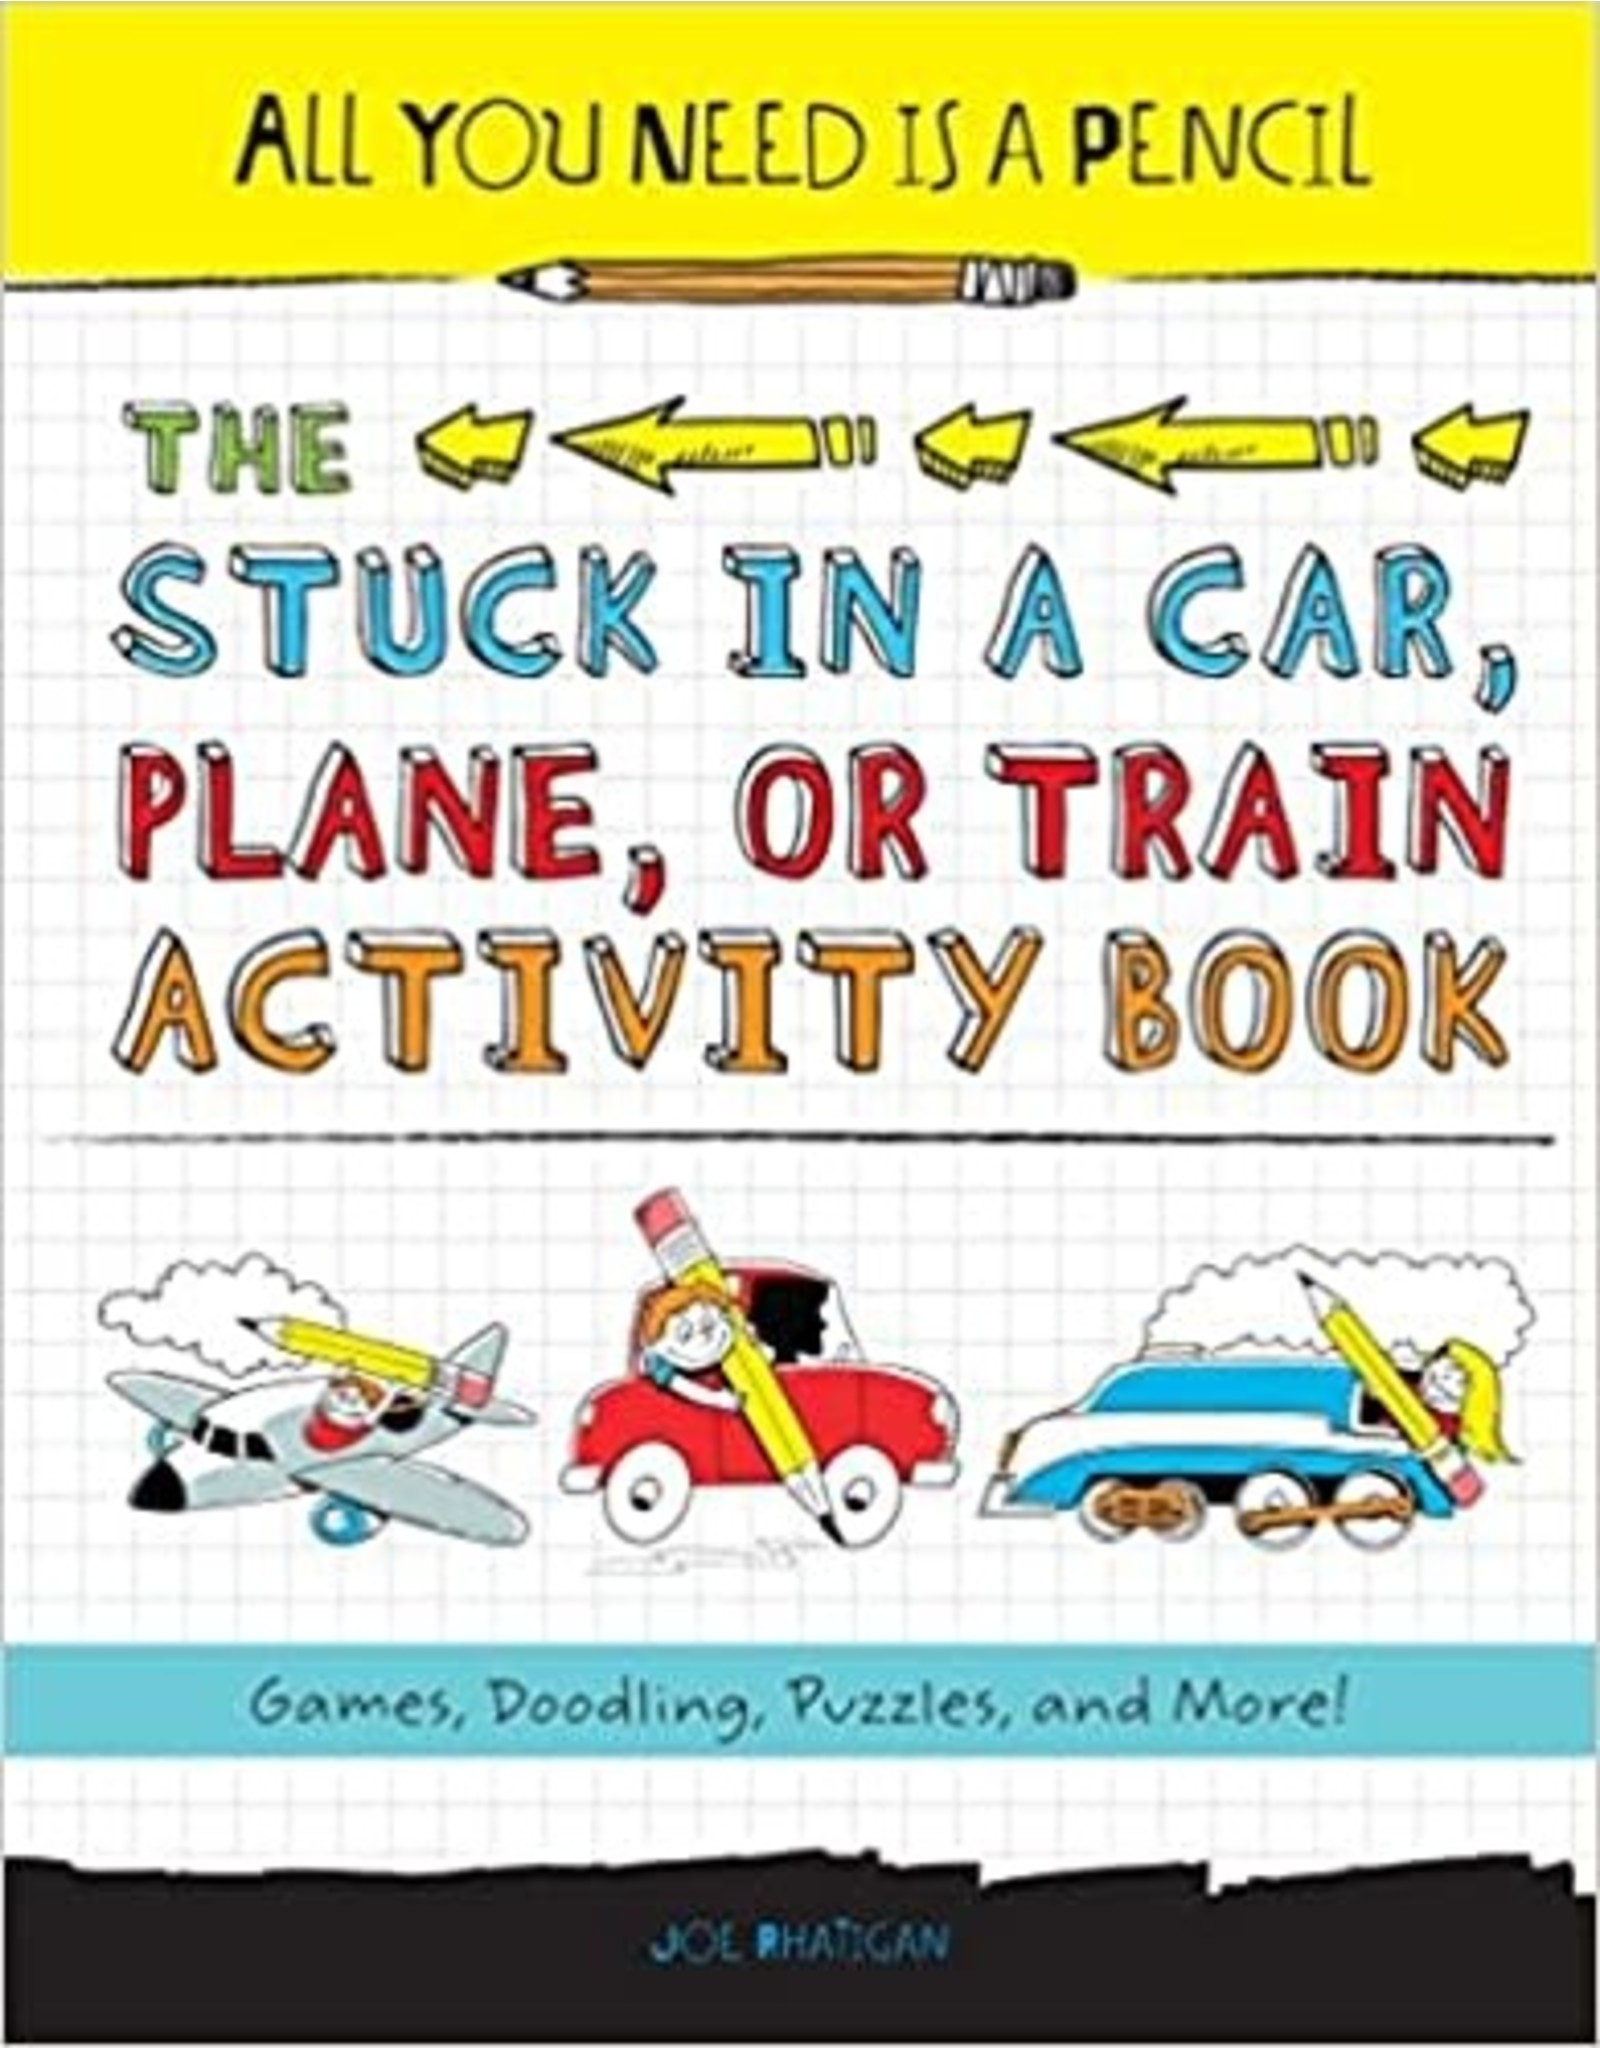 All You Need Is A Pencil: The Stuck in a Car, Plane, or Train Activity Book (Softcover)